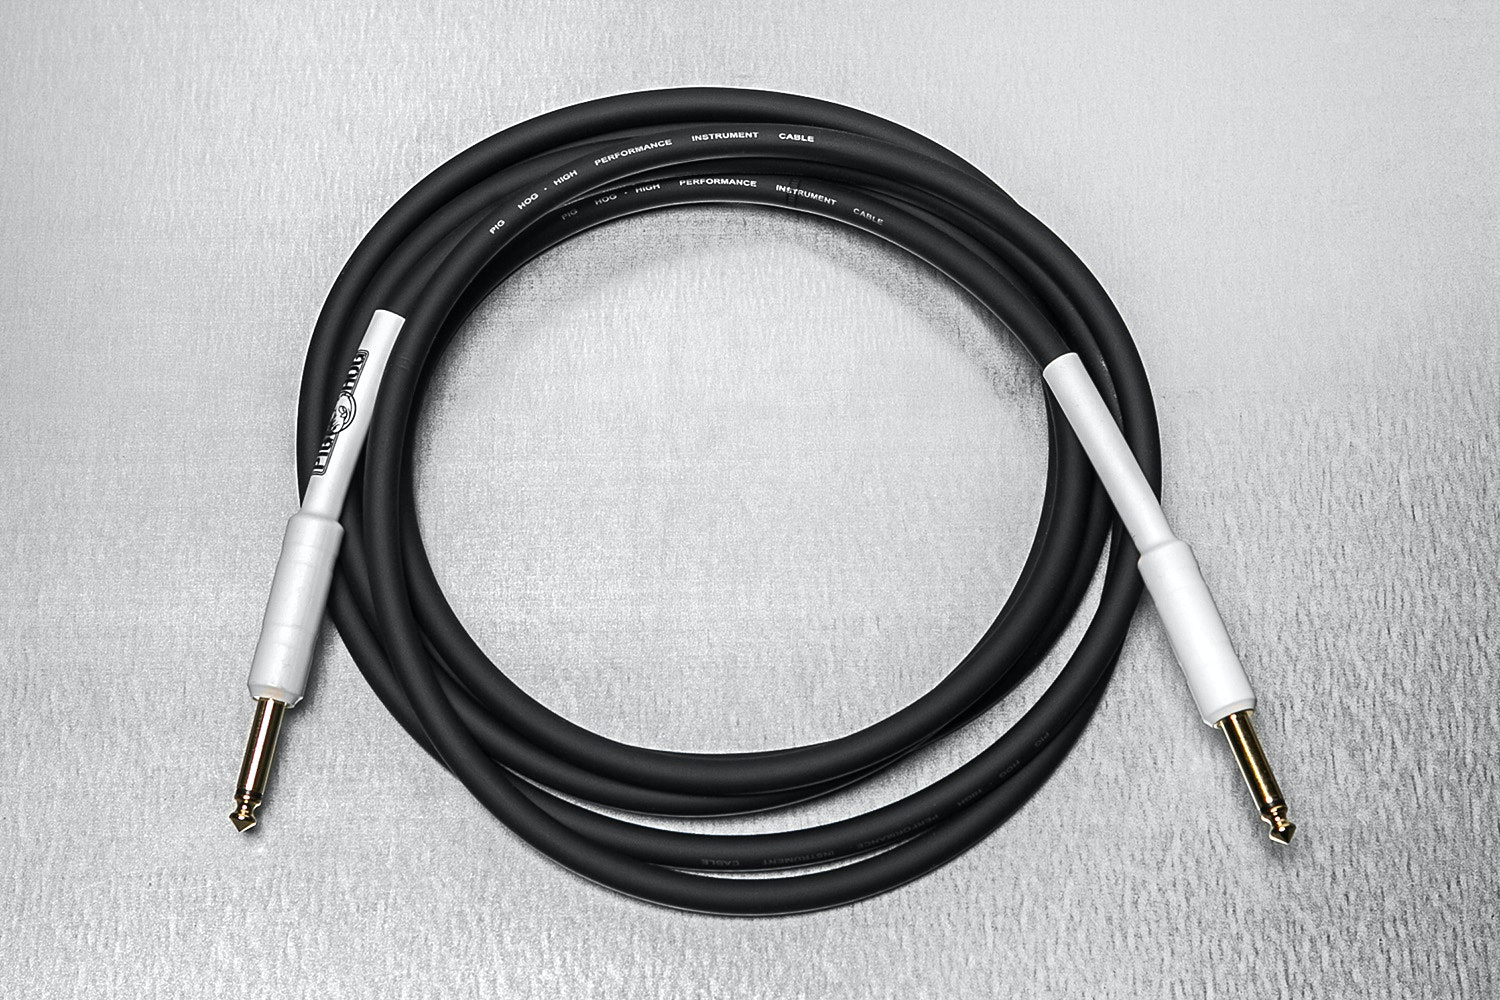 "Pig Hog 1/4"" Instrument Cables"